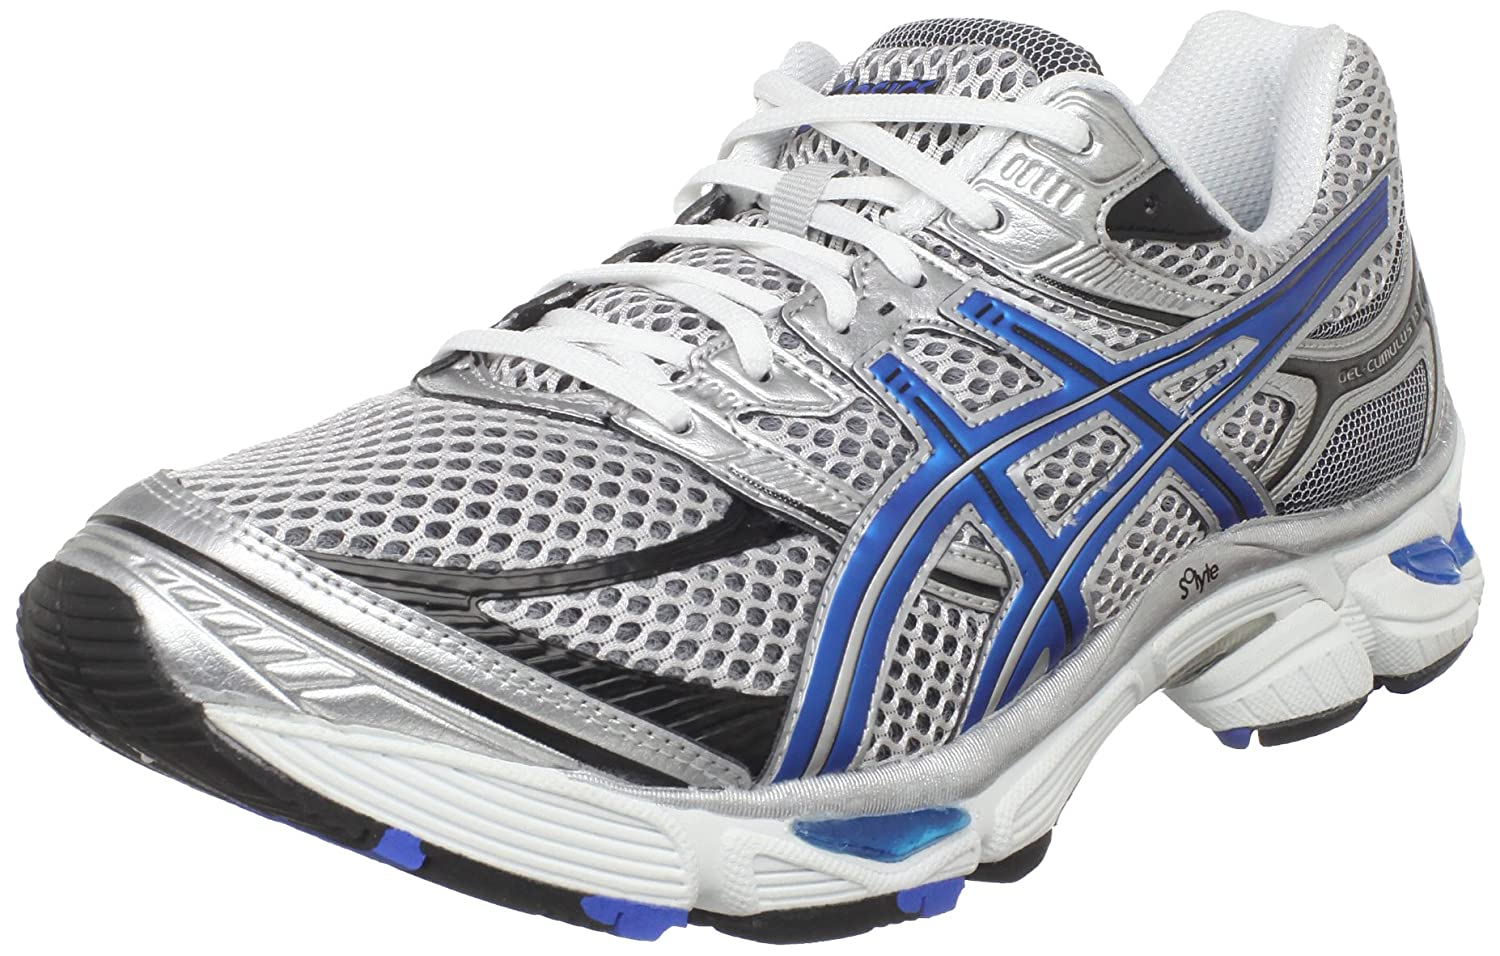 ASICS Men's GEL-Cumulus 13 Running Shoe,White/Royal/Black,9 M US $67.98